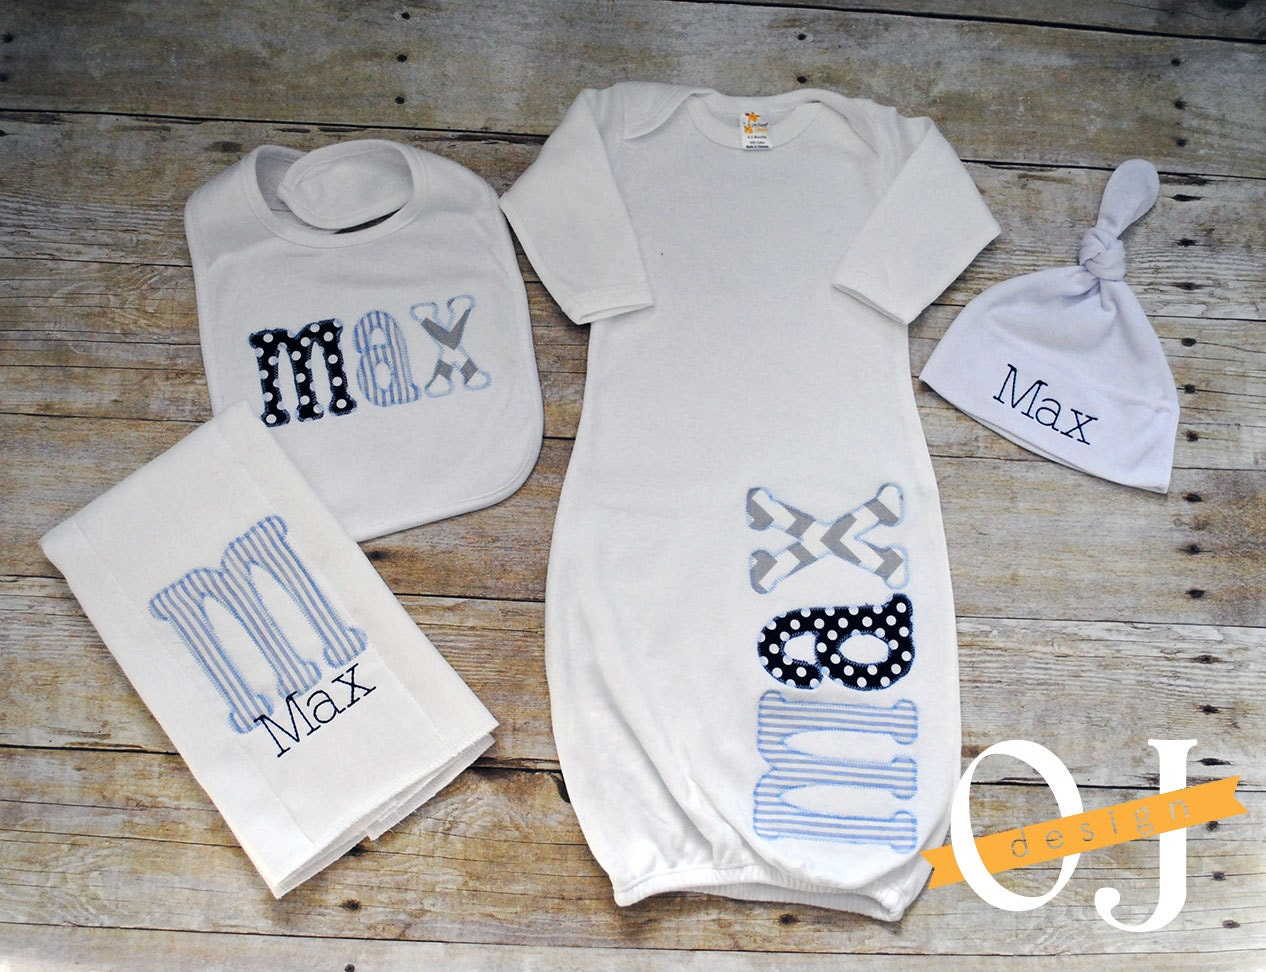 Personalized Baby Gift Sets : Personalized baby boy gift set newborn infant